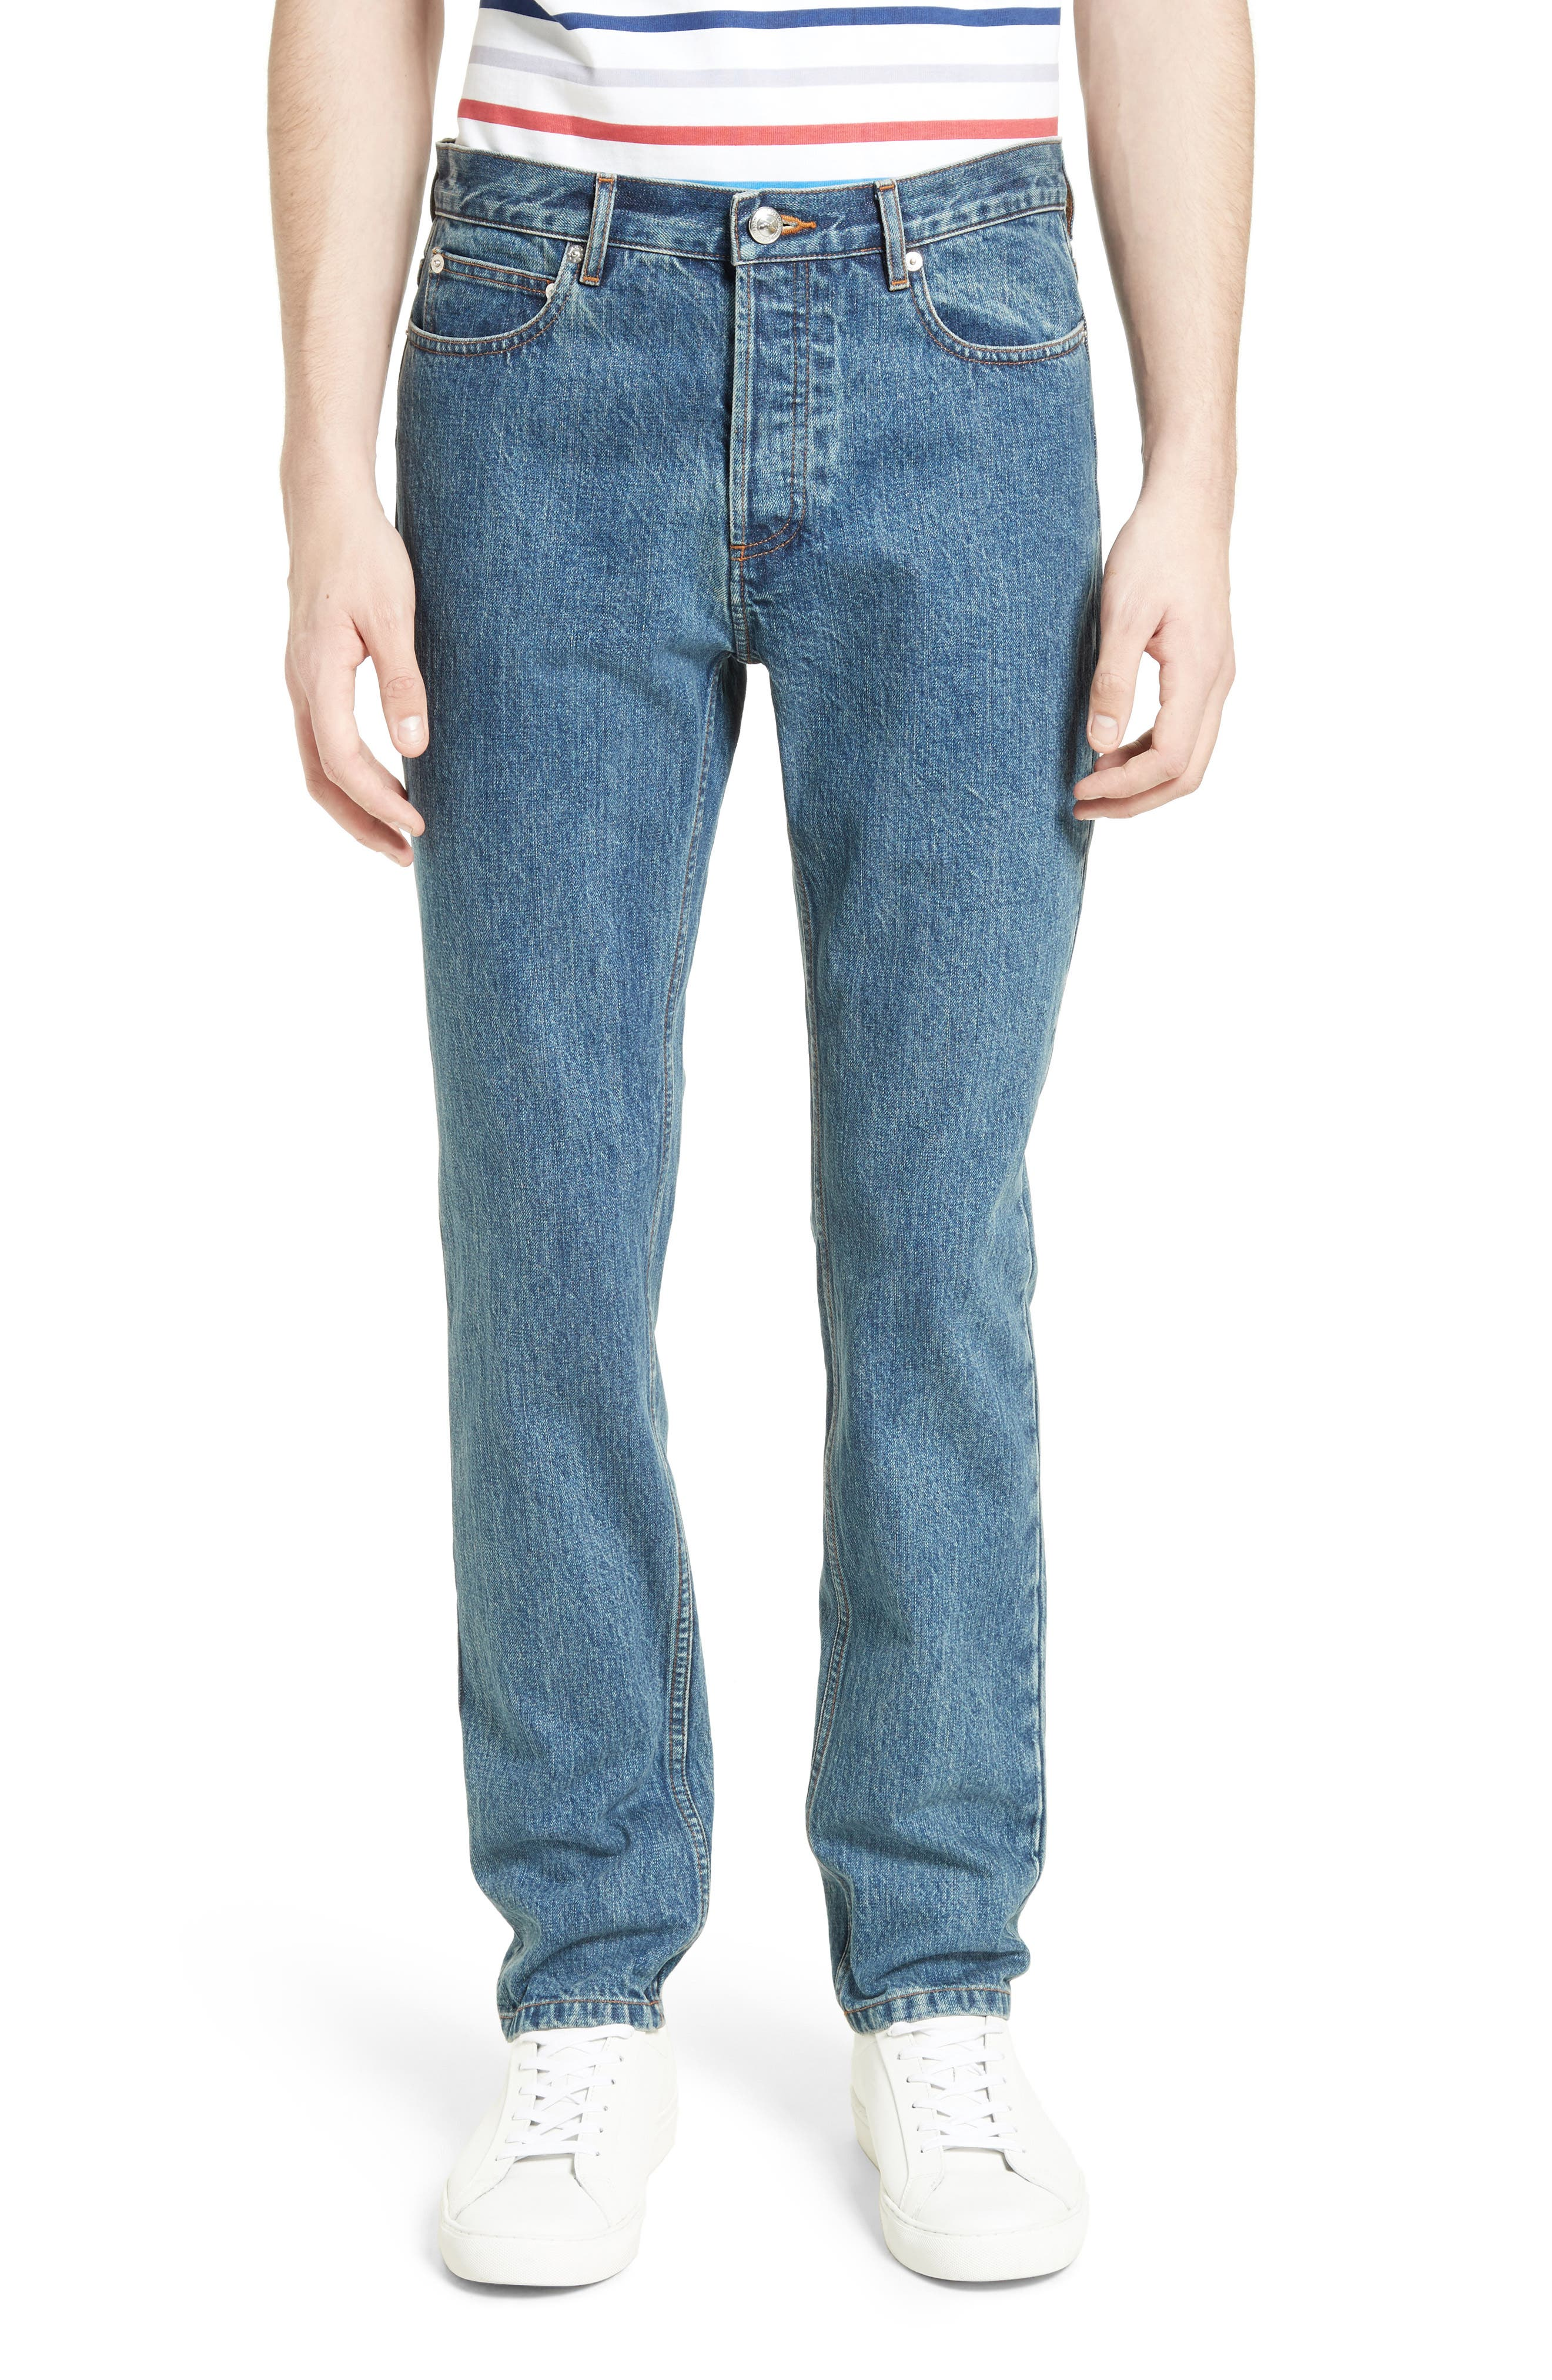 A.P.C. Low Standard Straight Leg Jeans